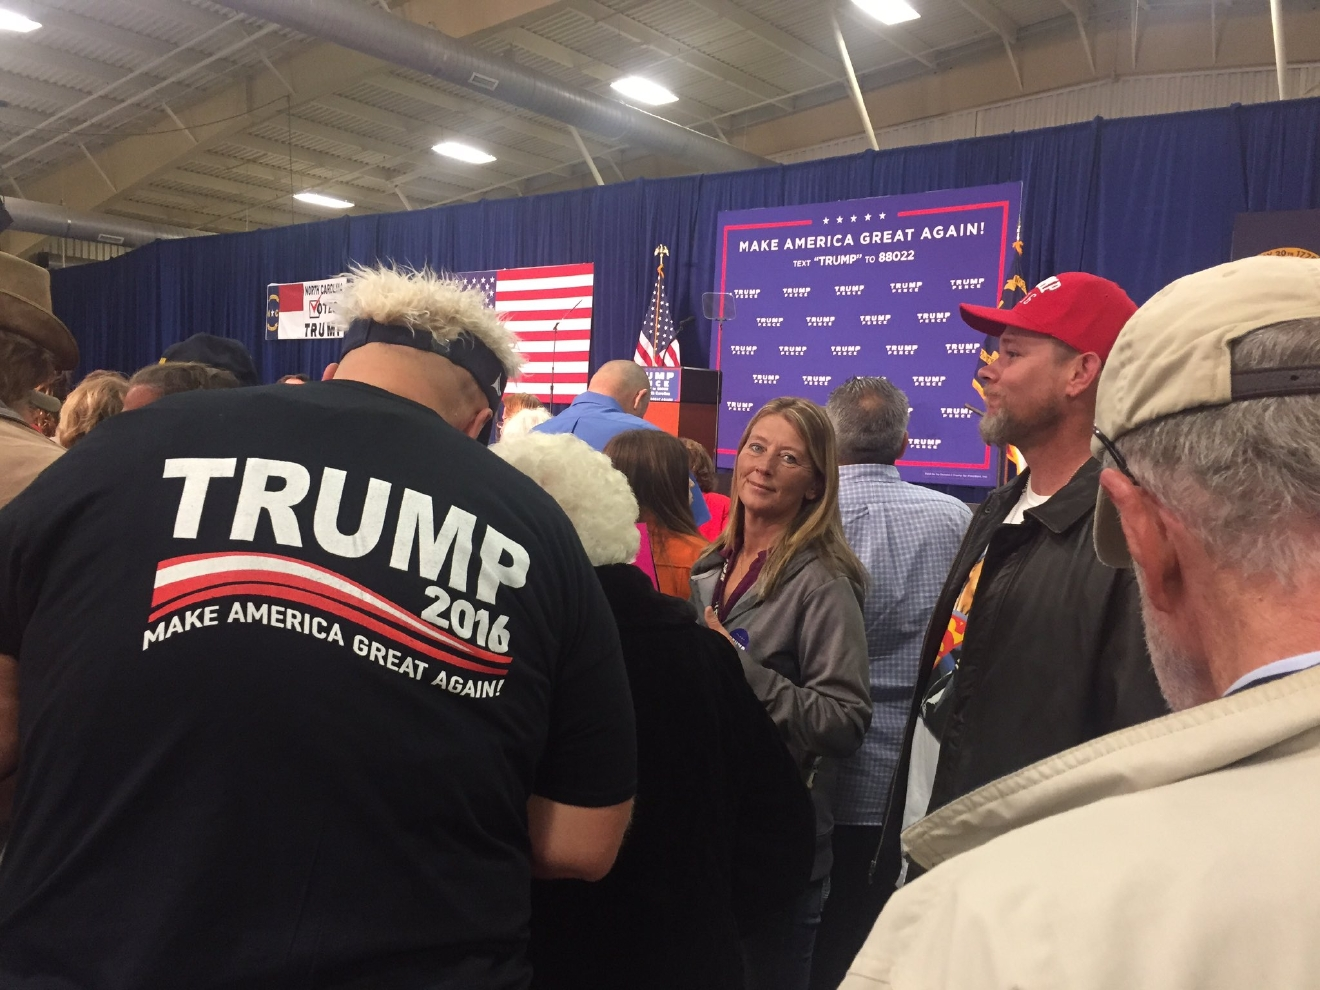 Trump supporters at the rally (Photo credit: WLOS staff)